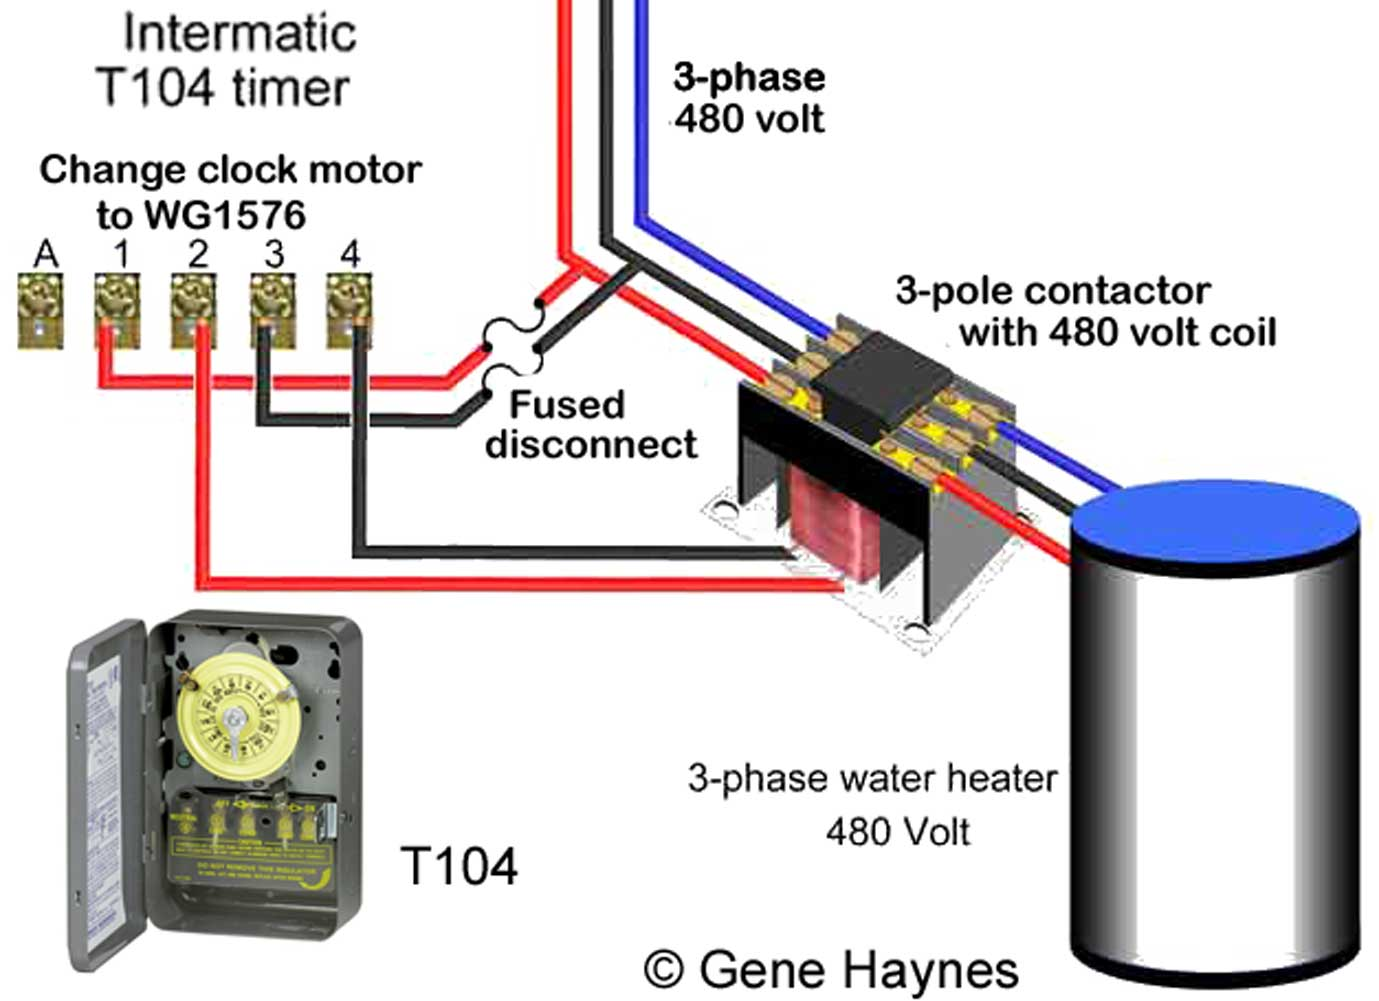 hight resolution of  t 104 timer controls 3 phase 480volt 480volt timer control 480 v 3 phase using t104 timer change 240v wg1573 clock motor to wg1576 clock motor